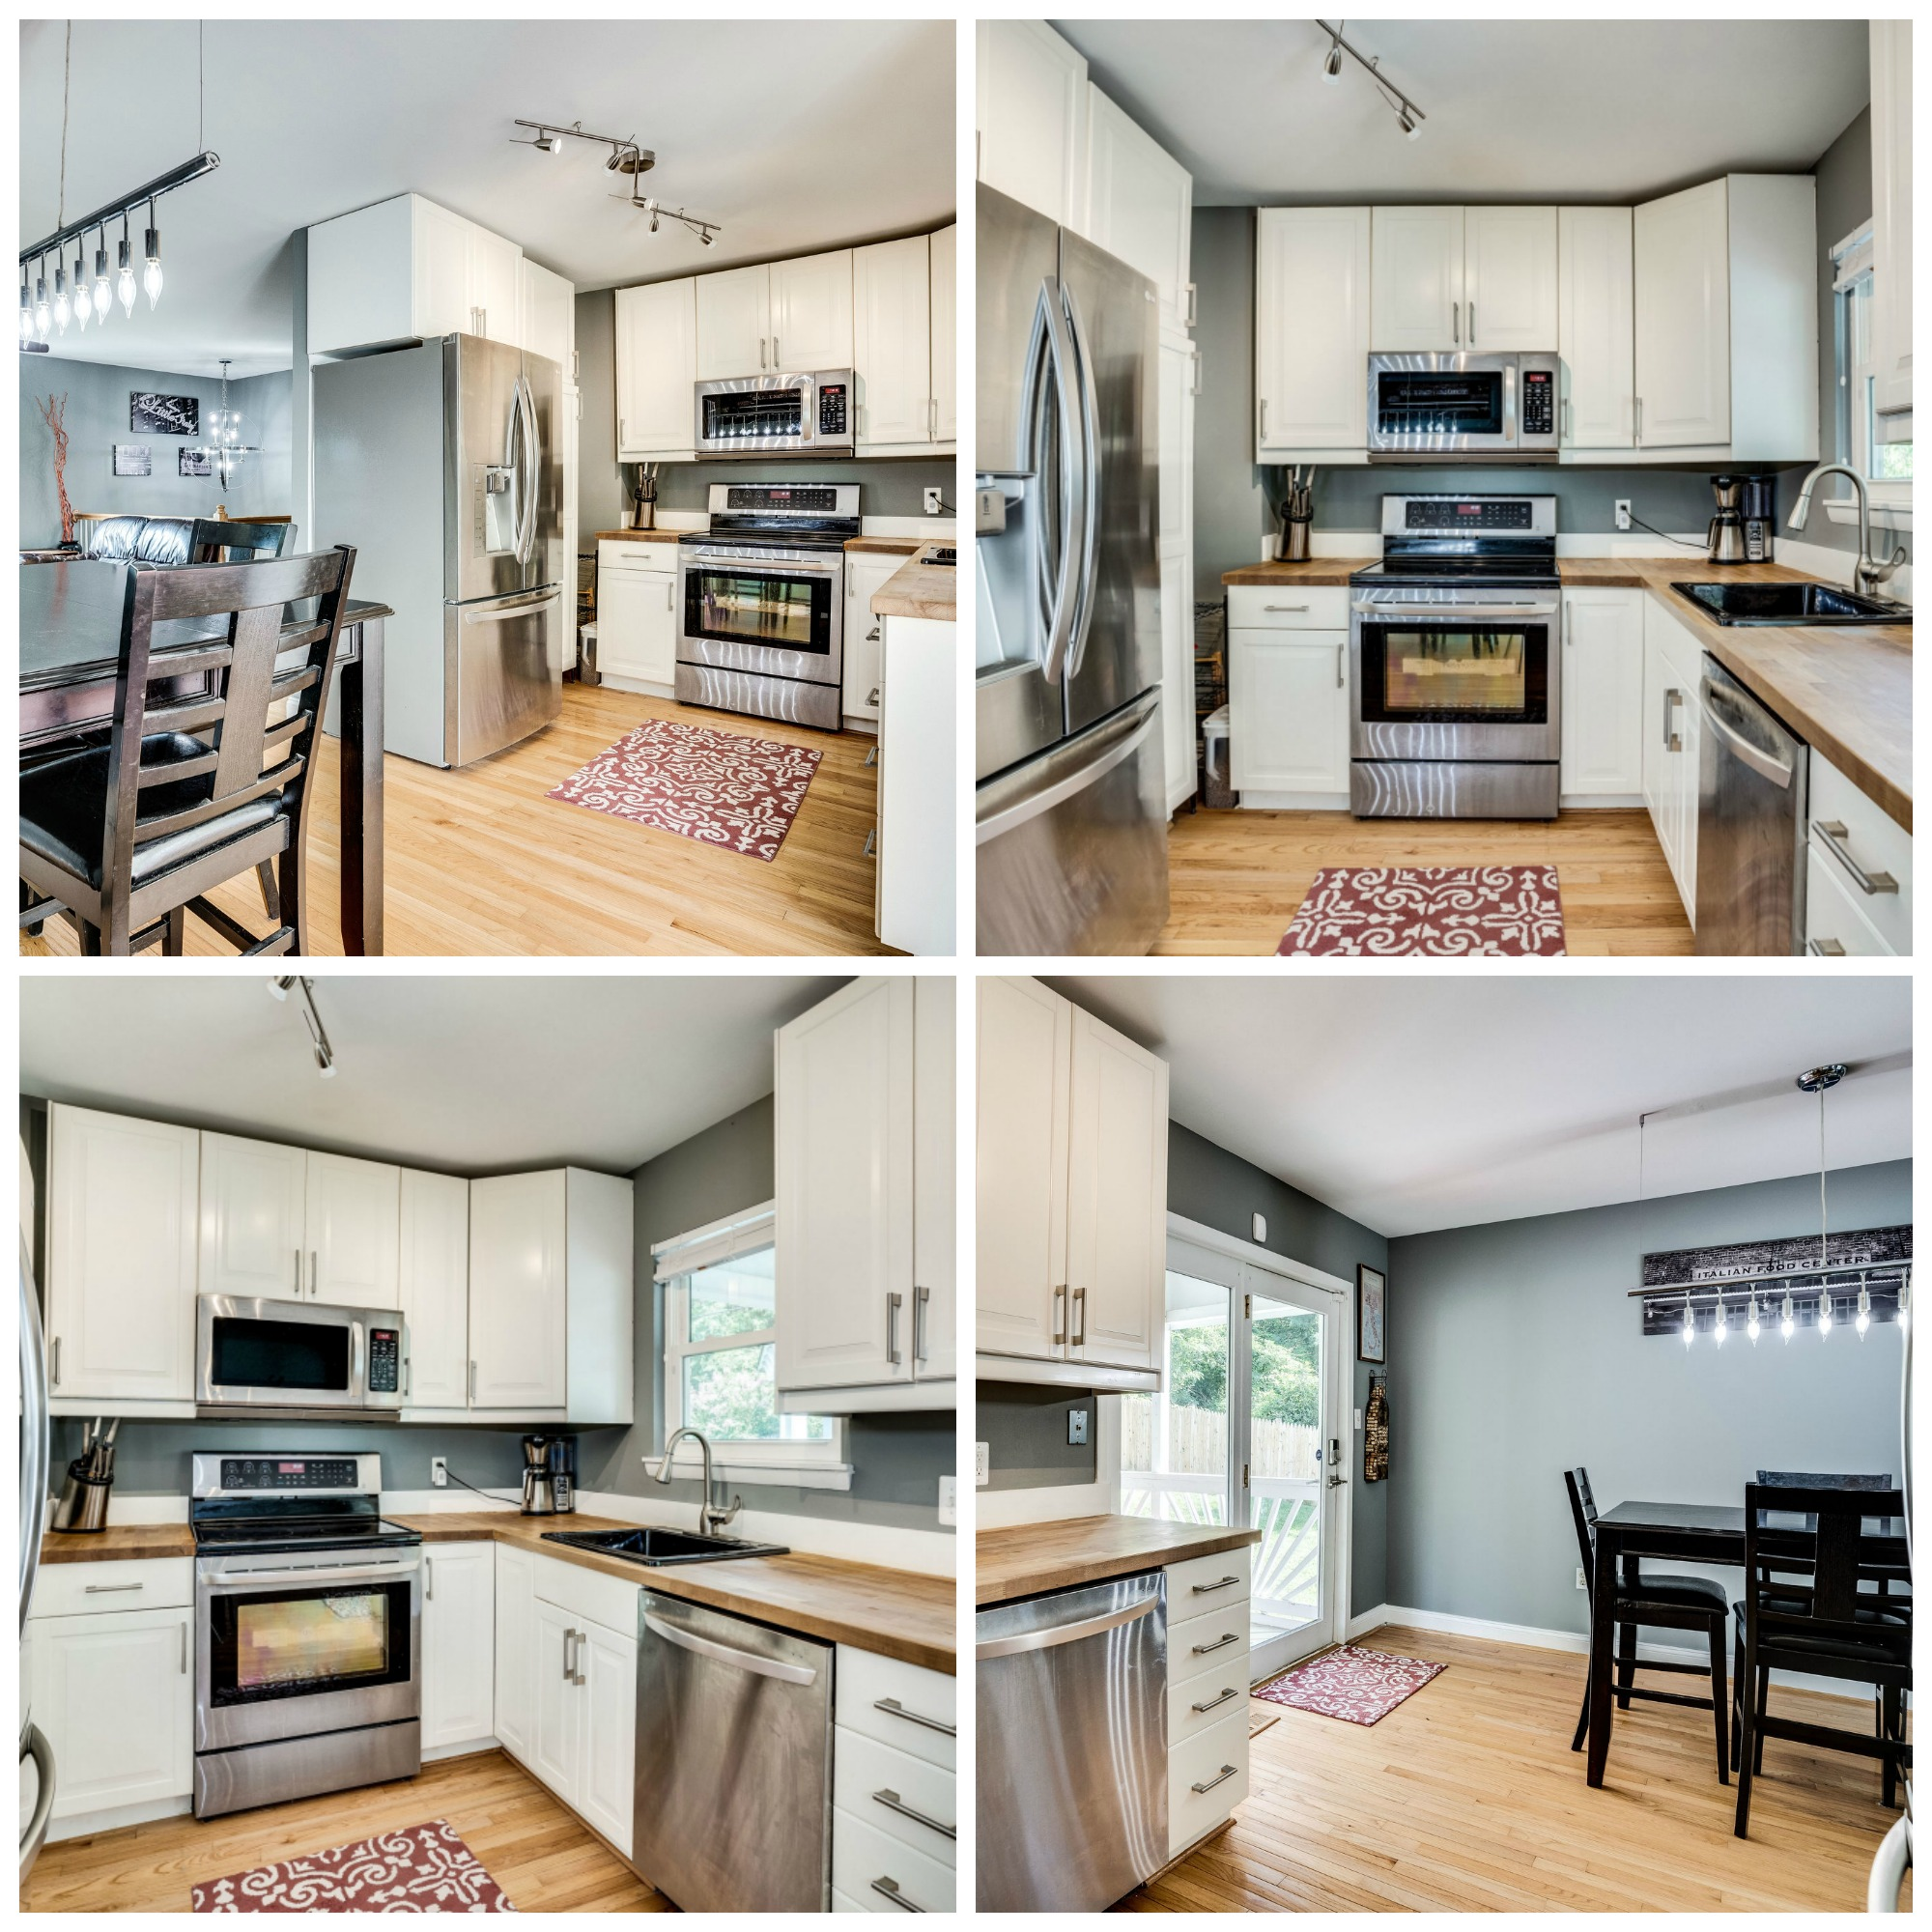 4422 Flintstone Rd, Alexandria- Kitchen